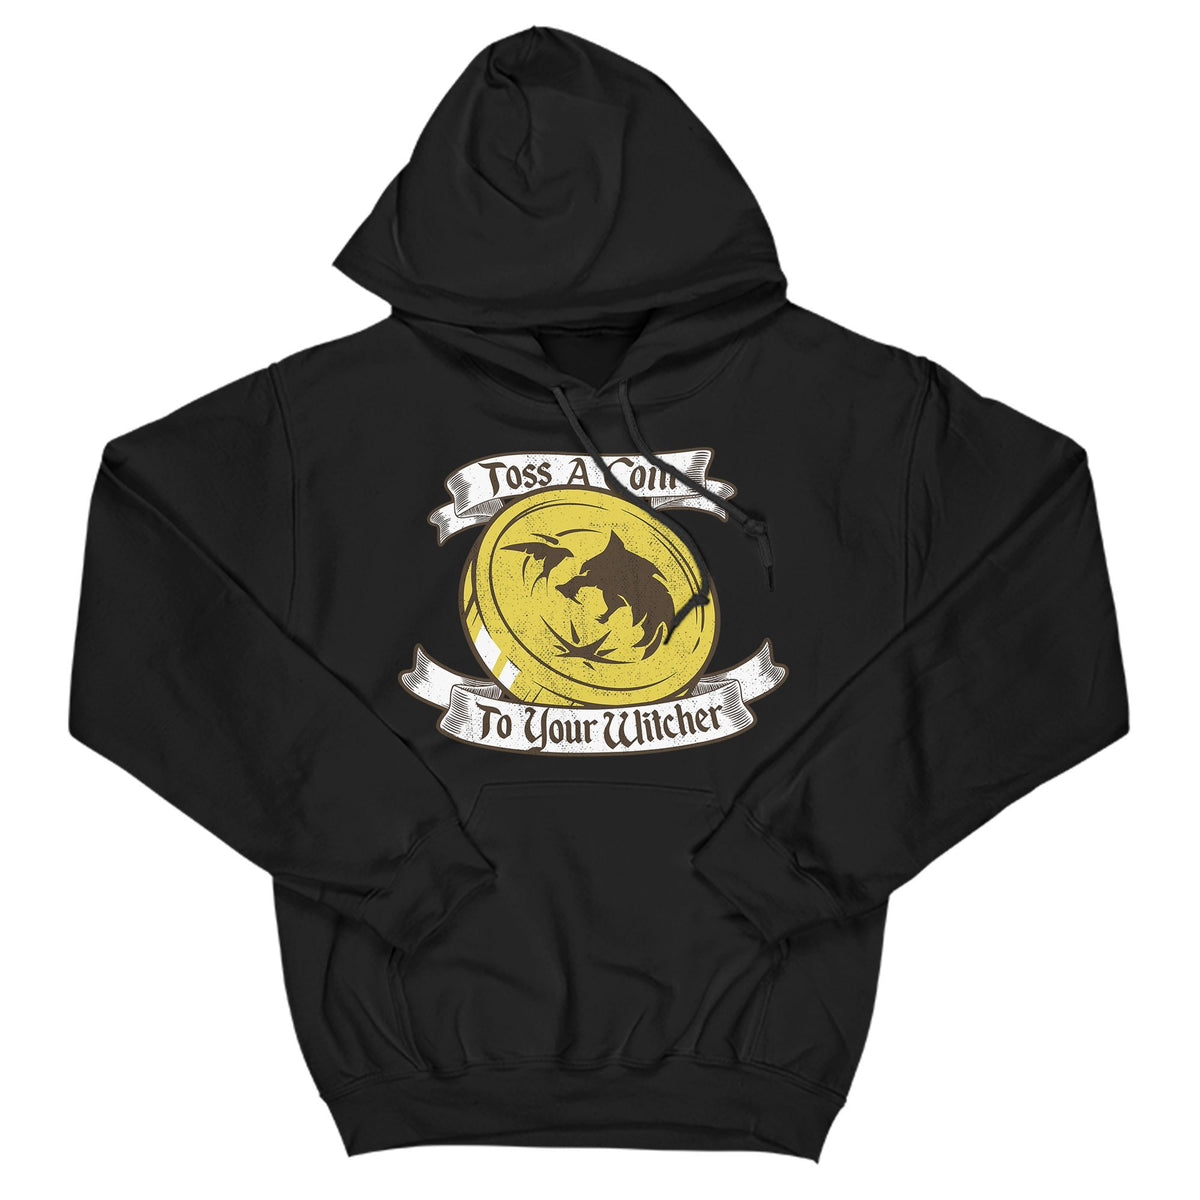 Toss A Coin Primate Novelty Hoodie Adults: S